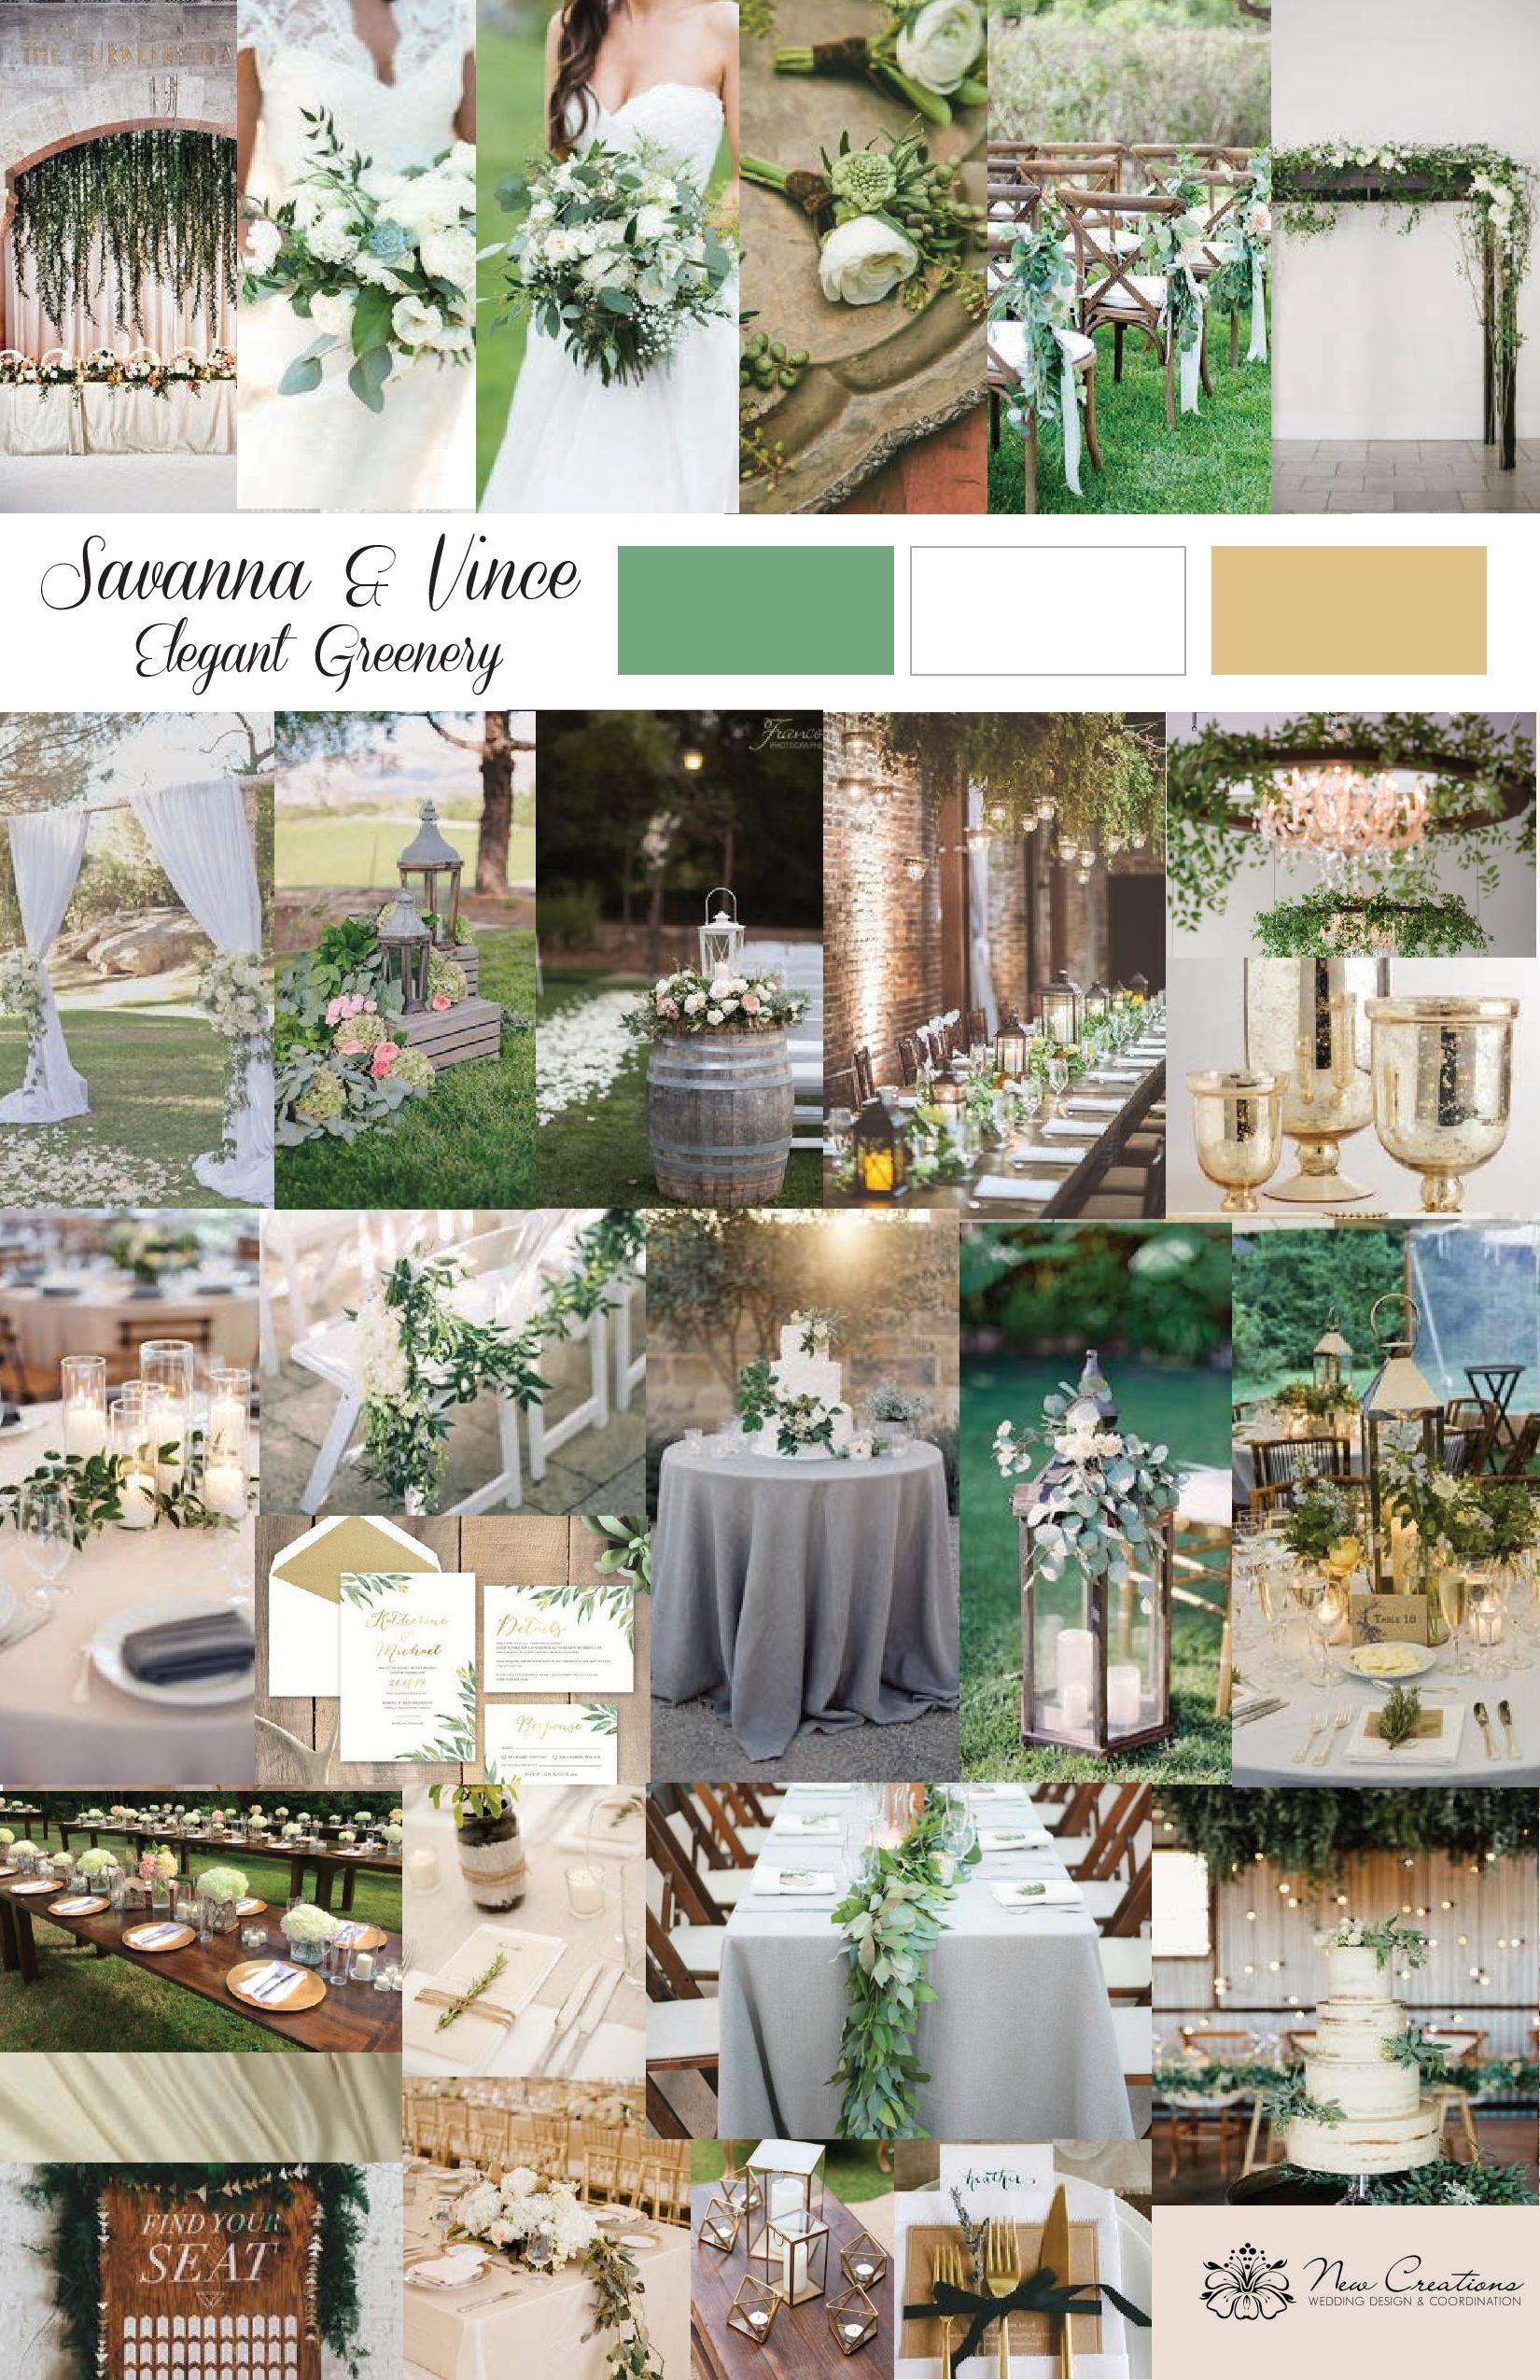 Summer Garden Inspiration Board Created by New Creations Weddings